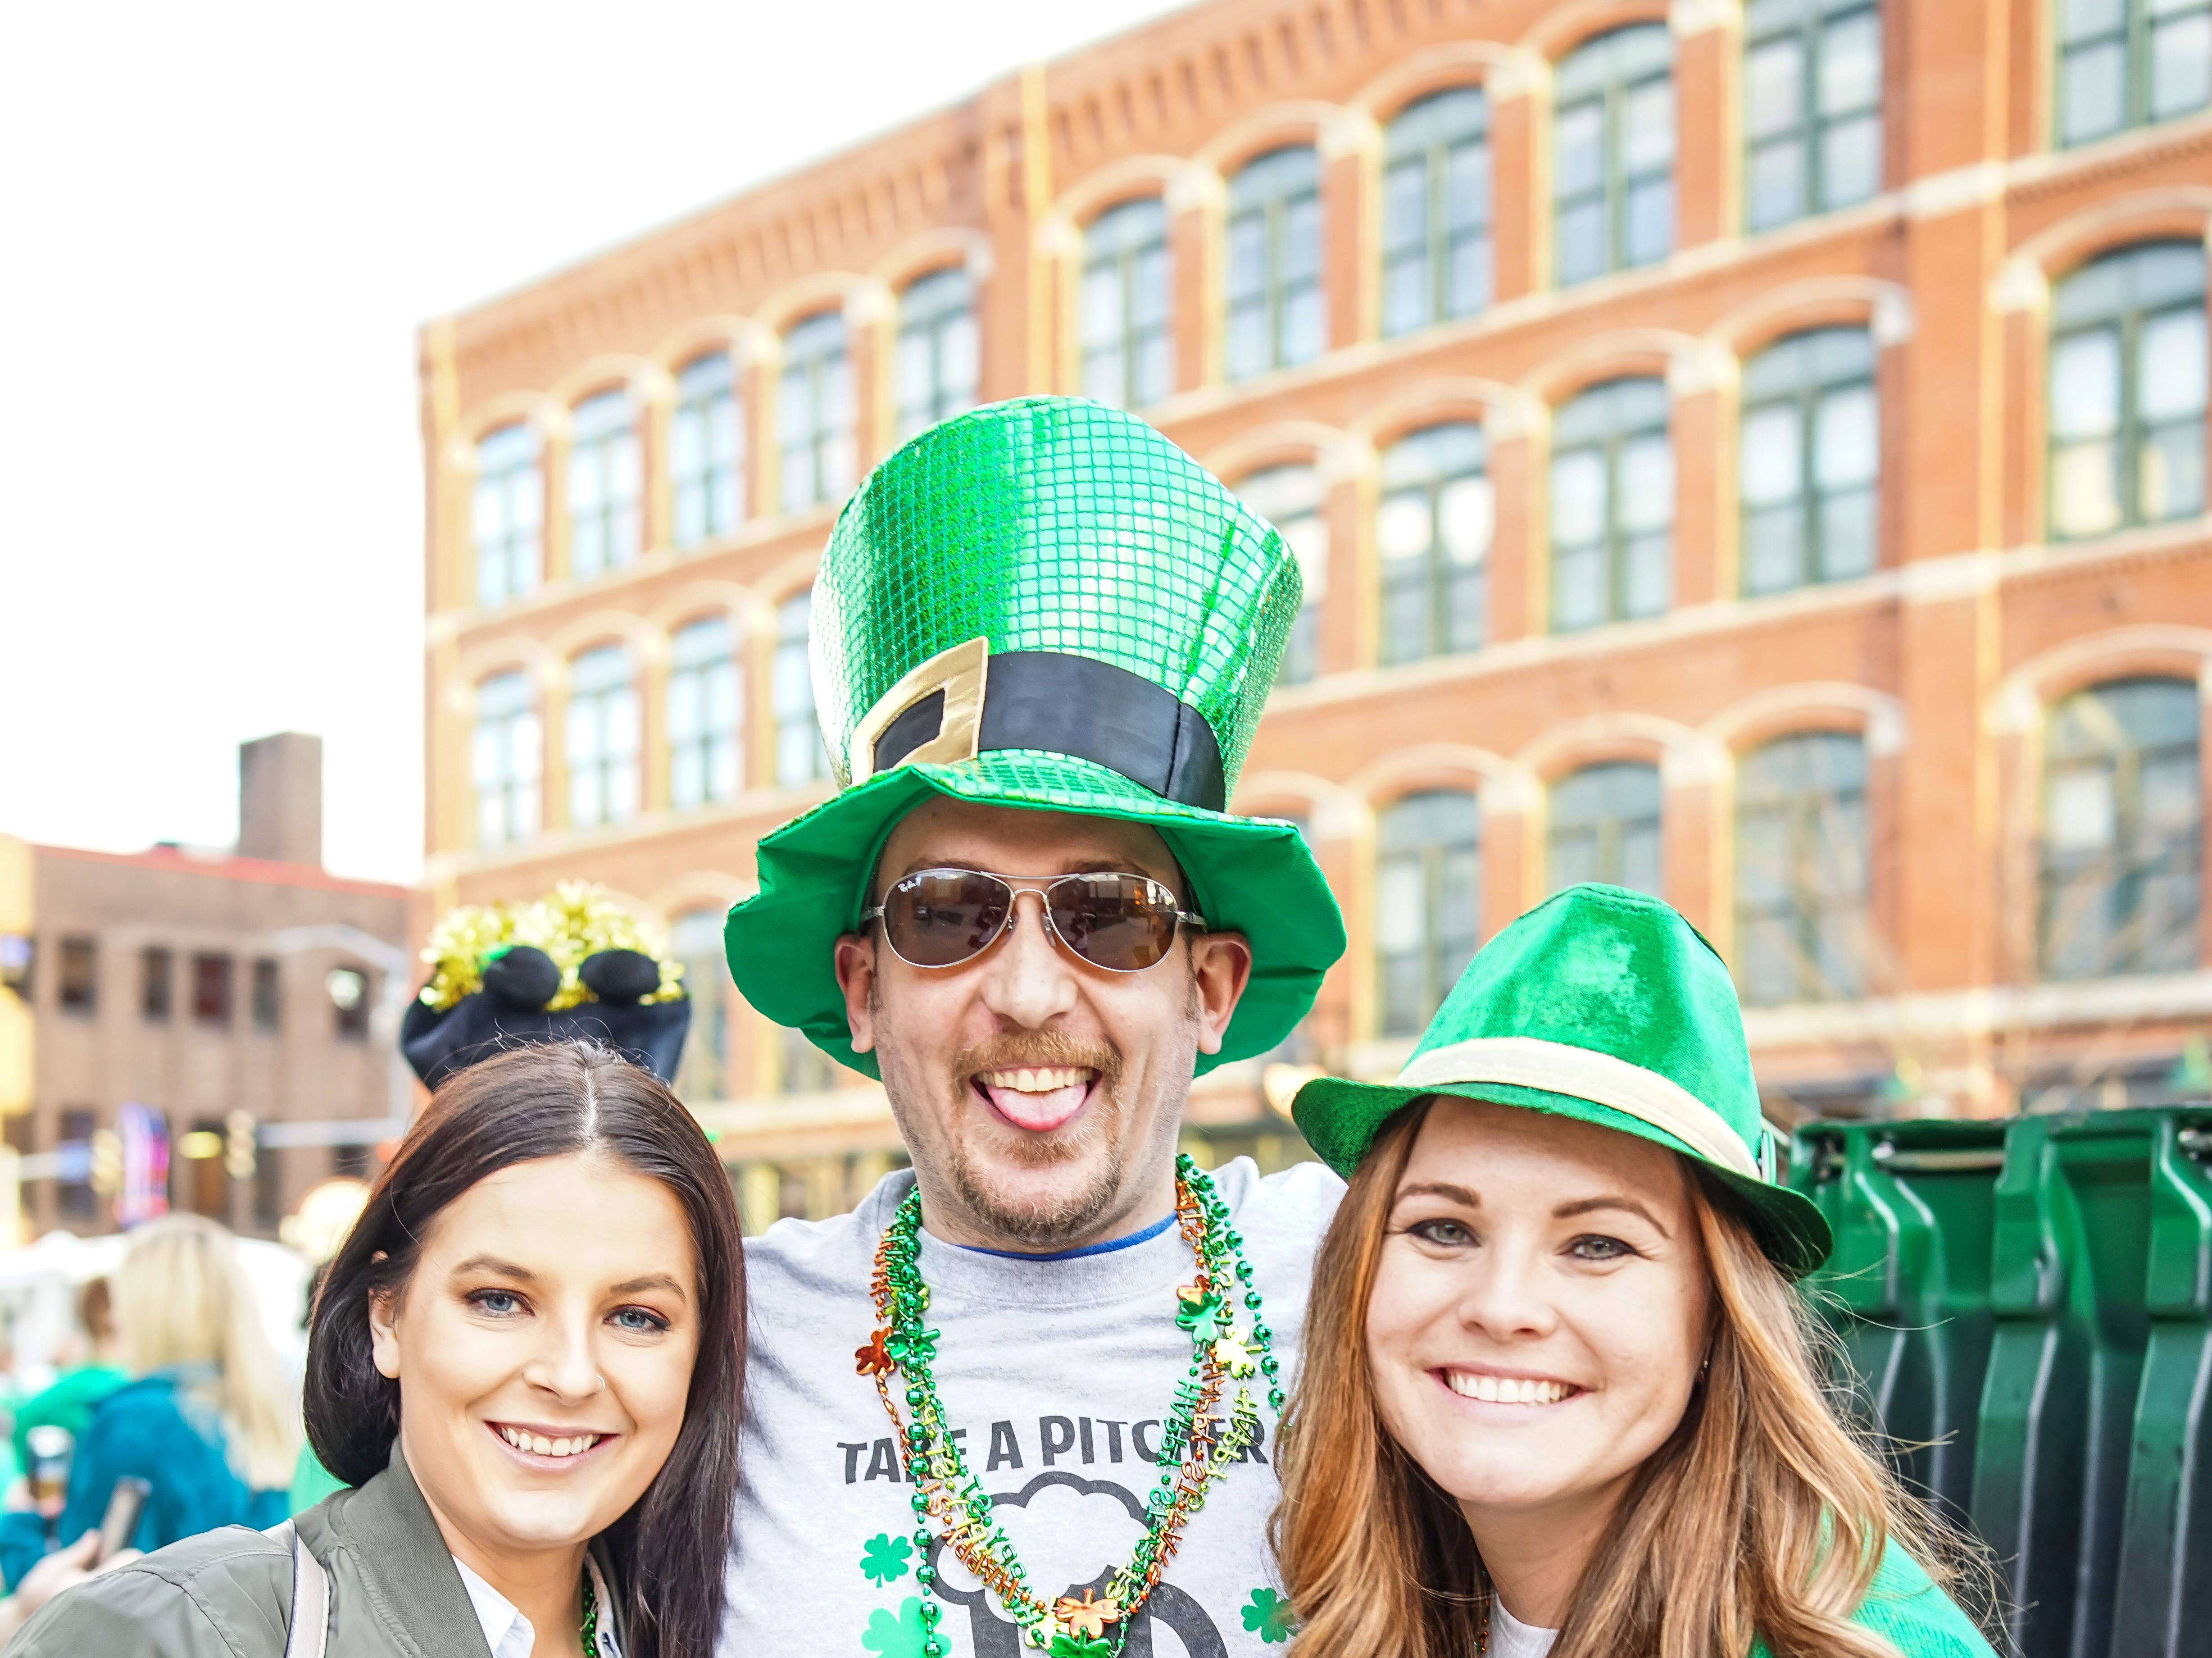 Christina Midlang, 23, Jason Stewart, 31, and Laura Stewart, 32, all of Des Moines, celebrating the holiday, Saturday, March 16, 2019, at the Court Avenue Block Party.